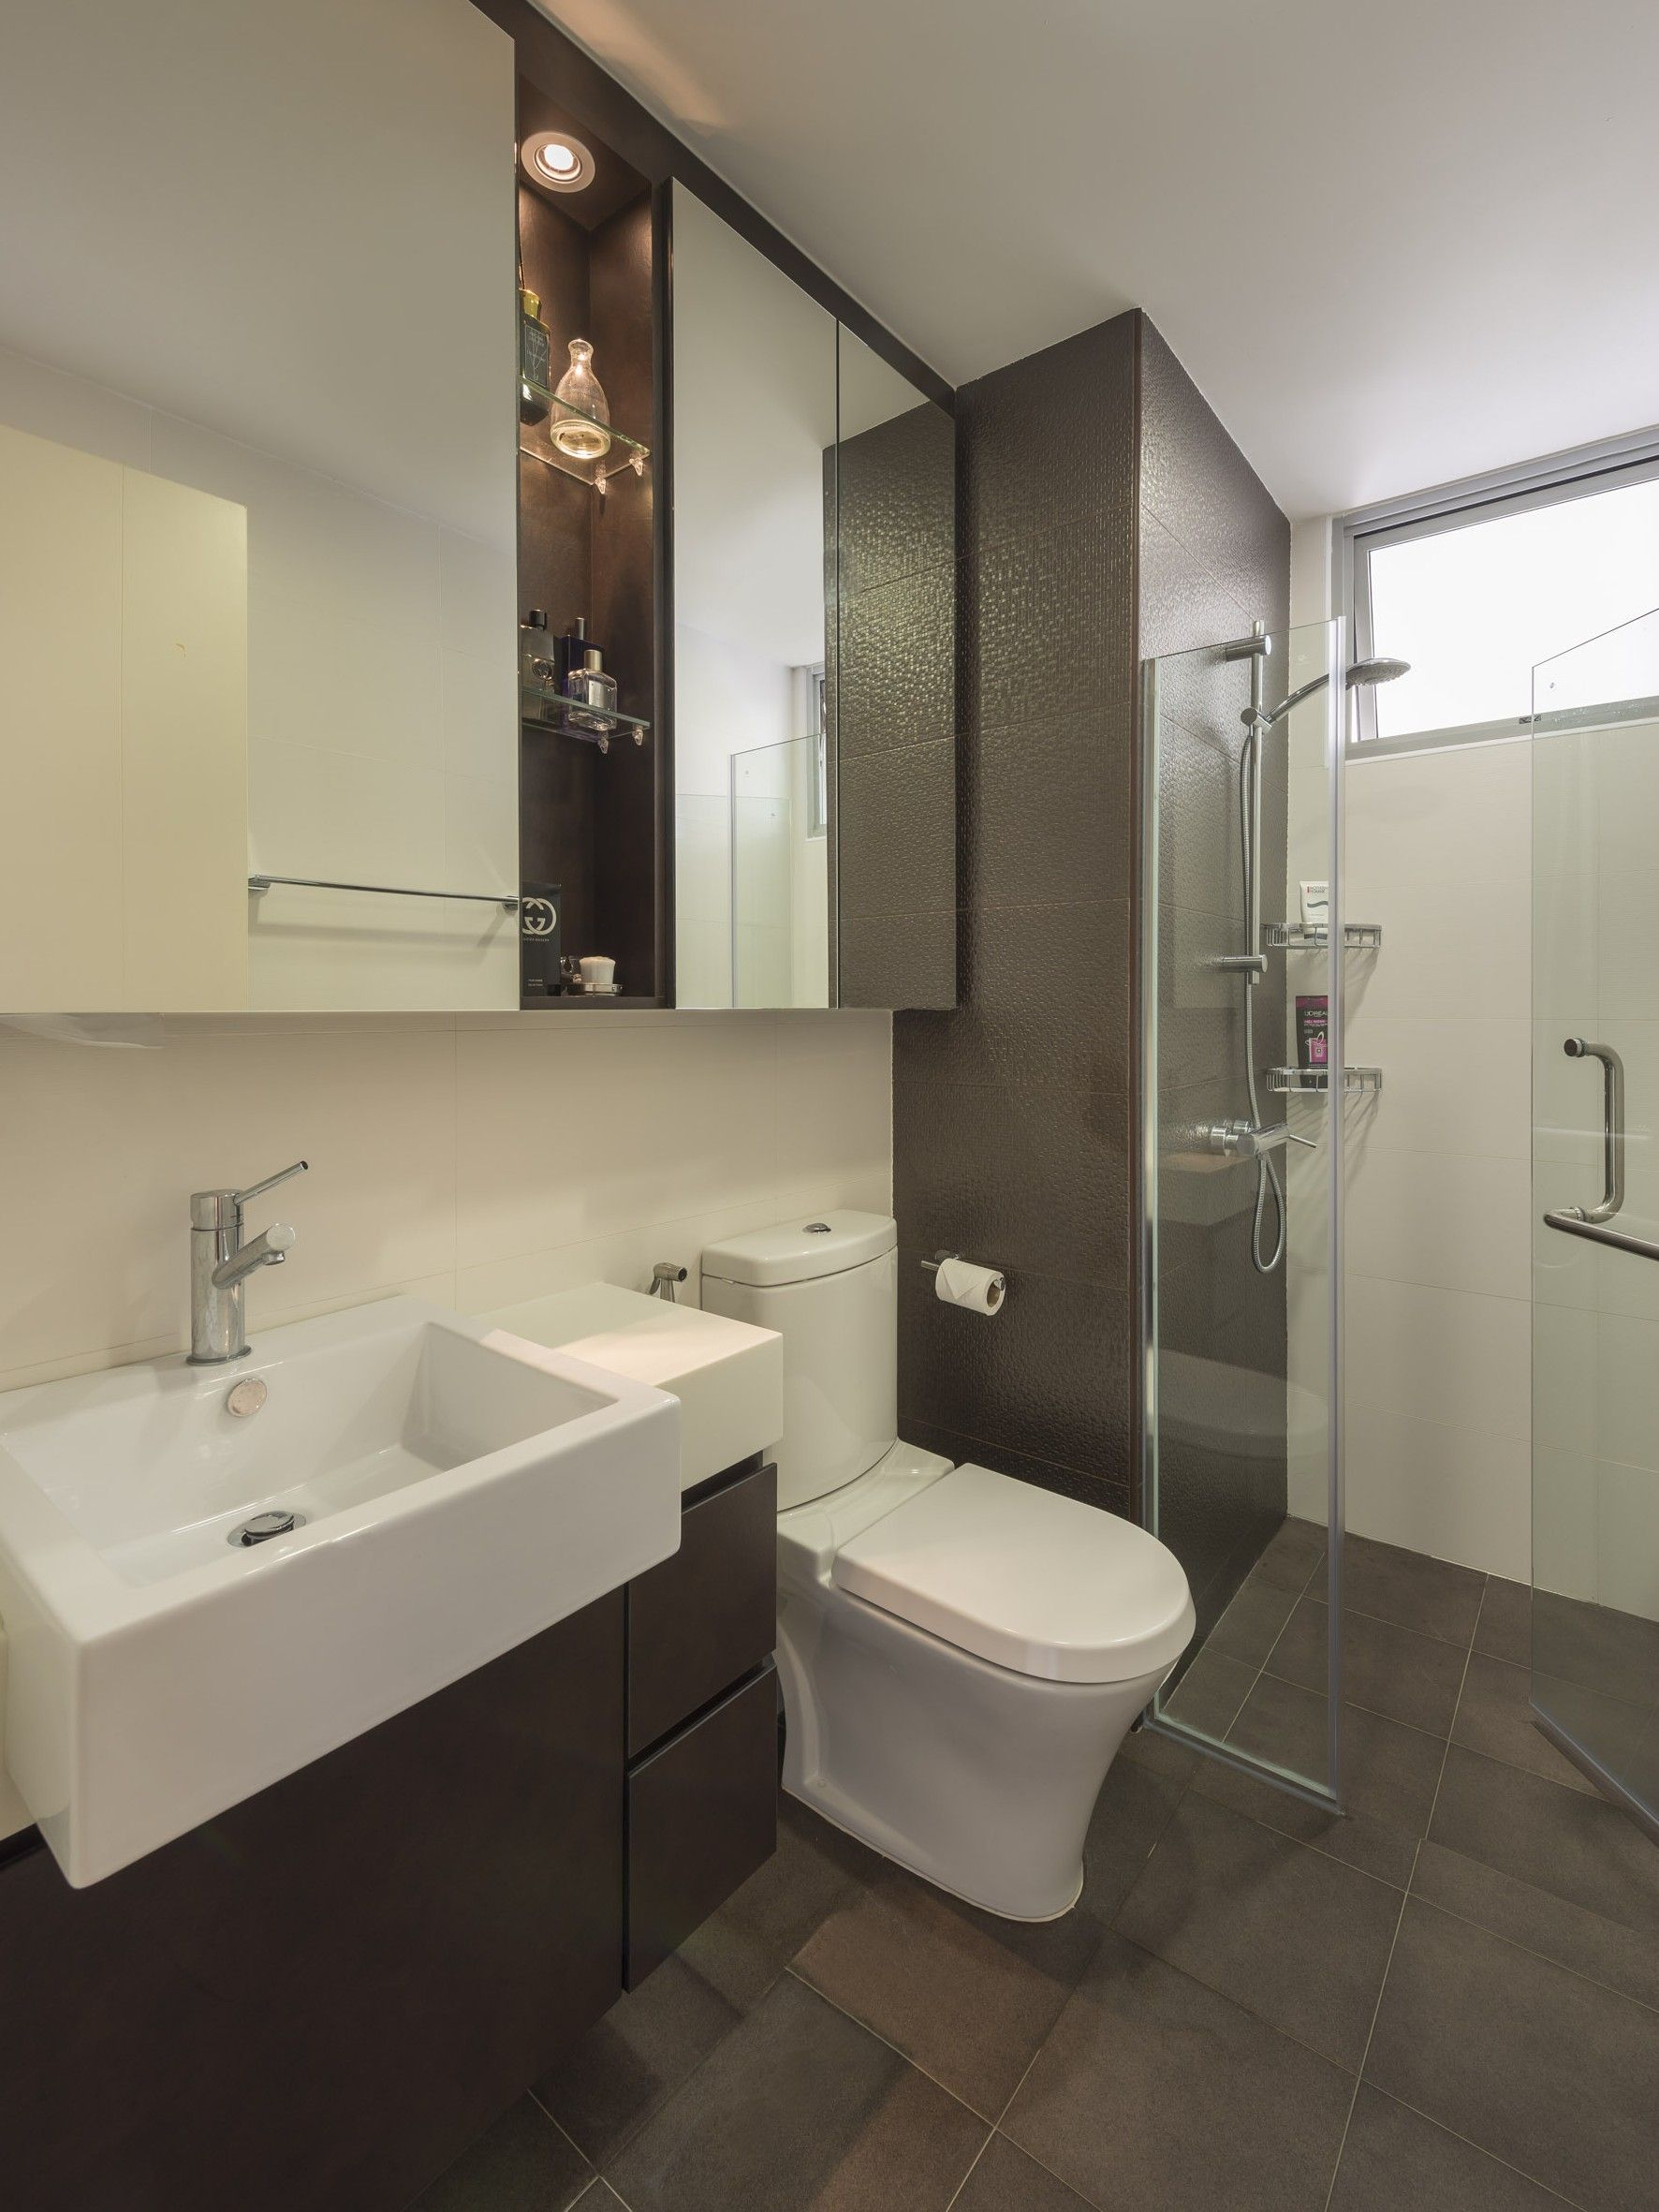 Small Bathroom Home Decor Singapore Home Decor Mood Board Pinterest Small Bathroom And